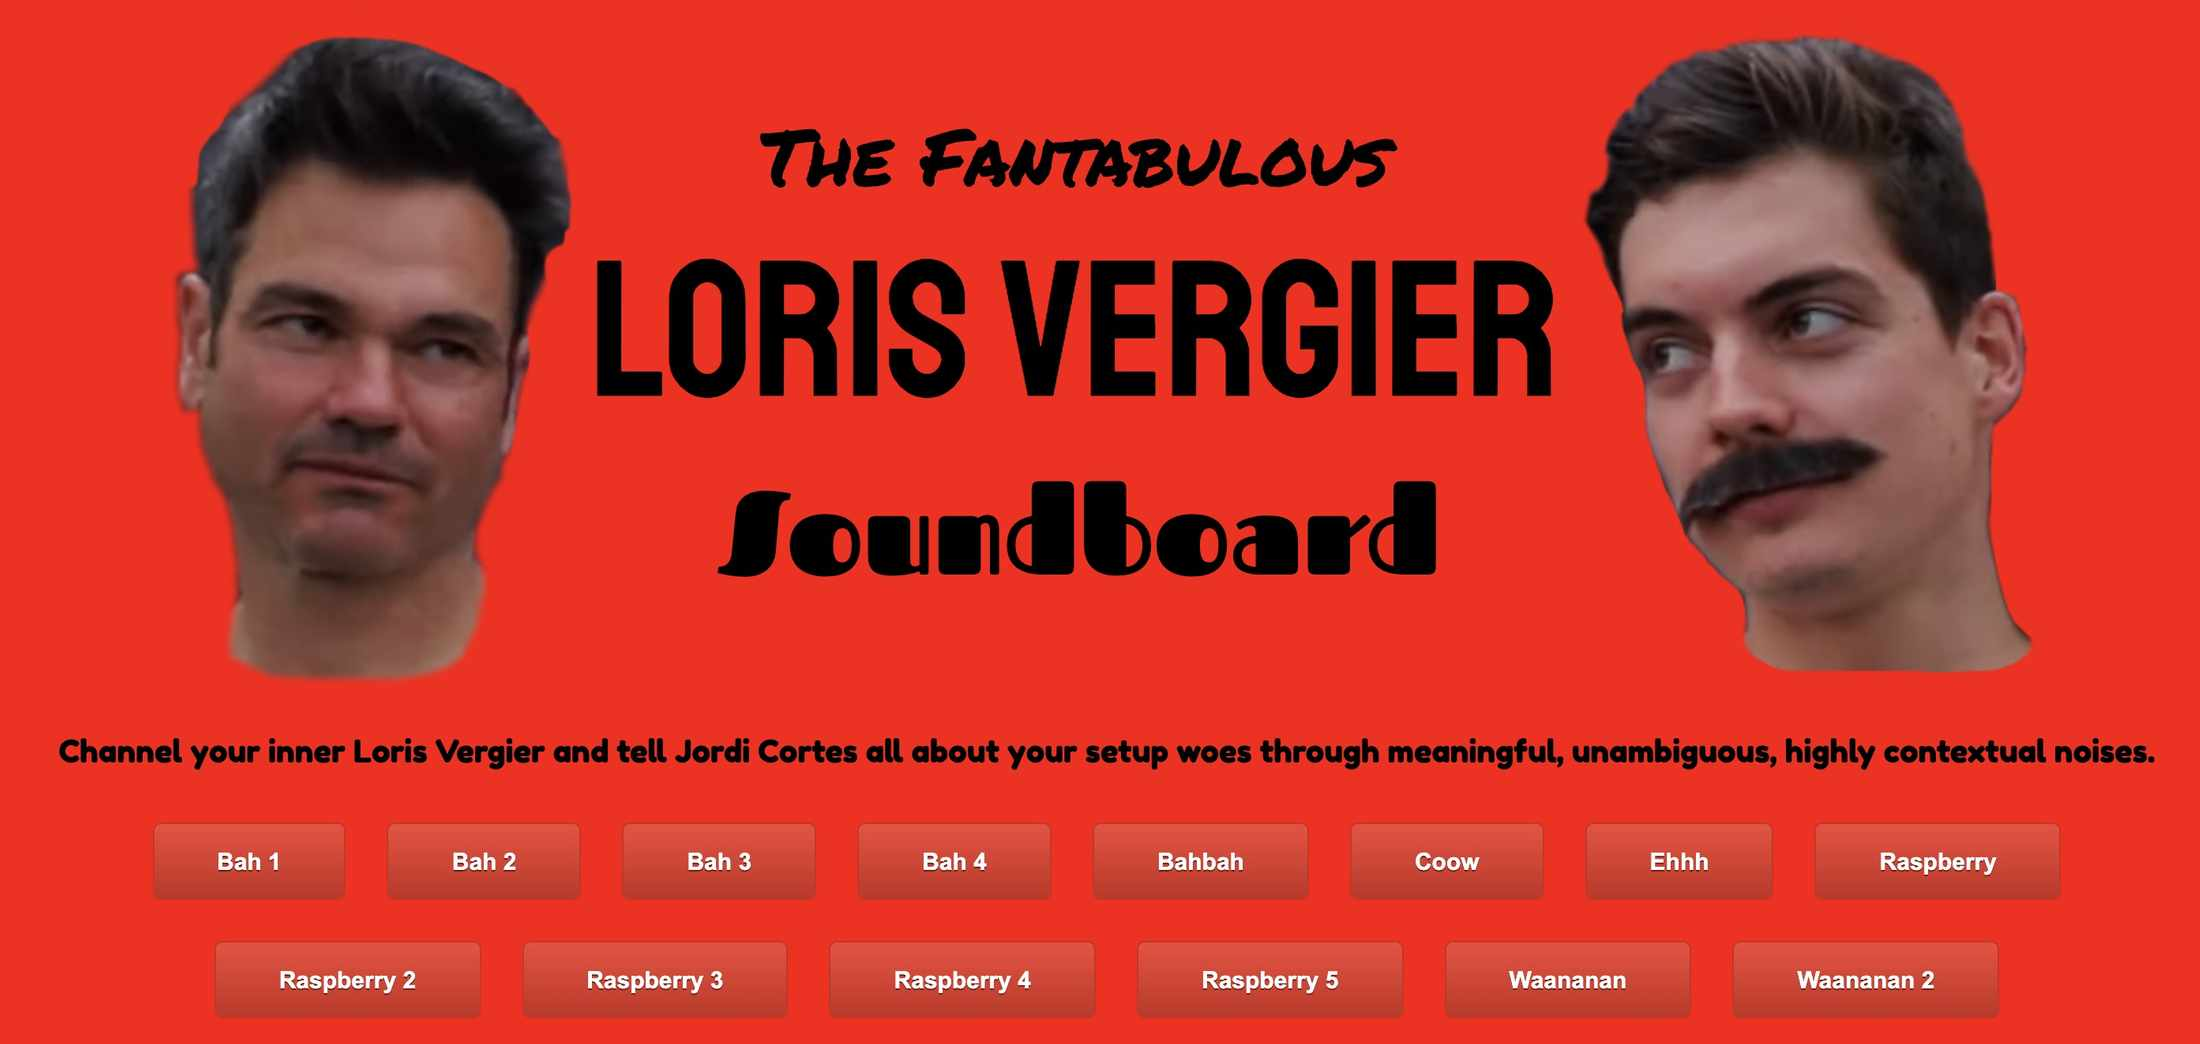 loris vergier sound board